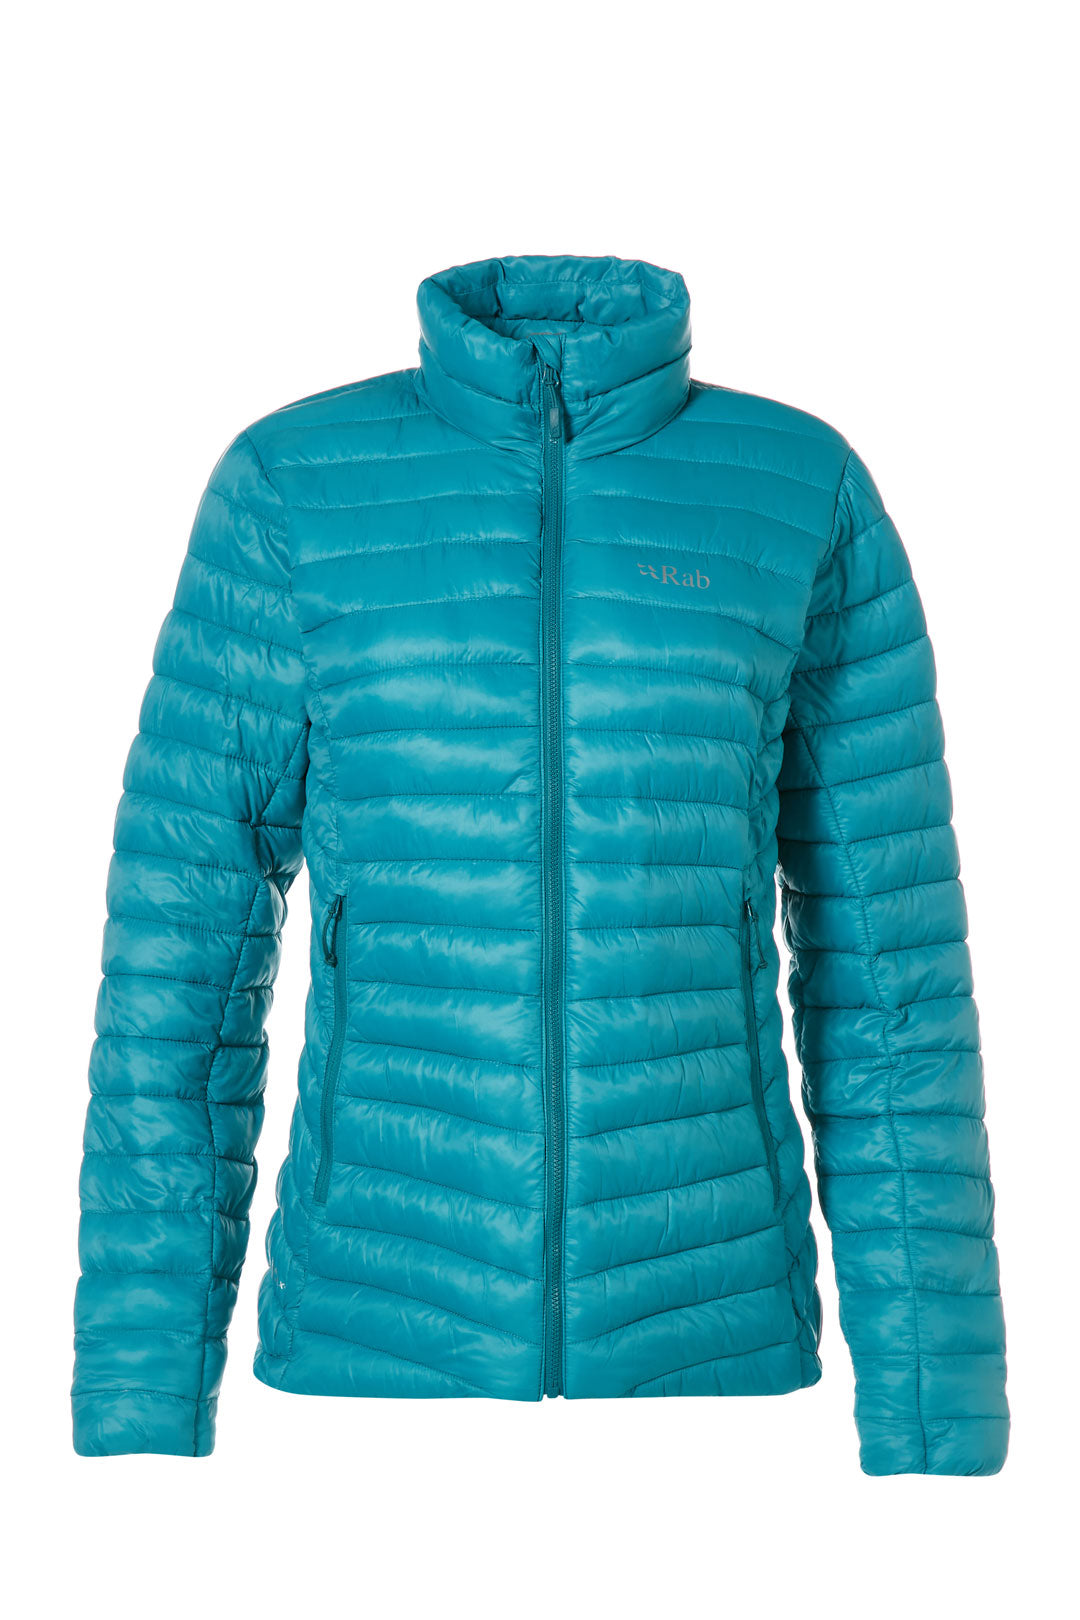 Rab Microlight Jacket for Ladies in Serenity / Atlantis